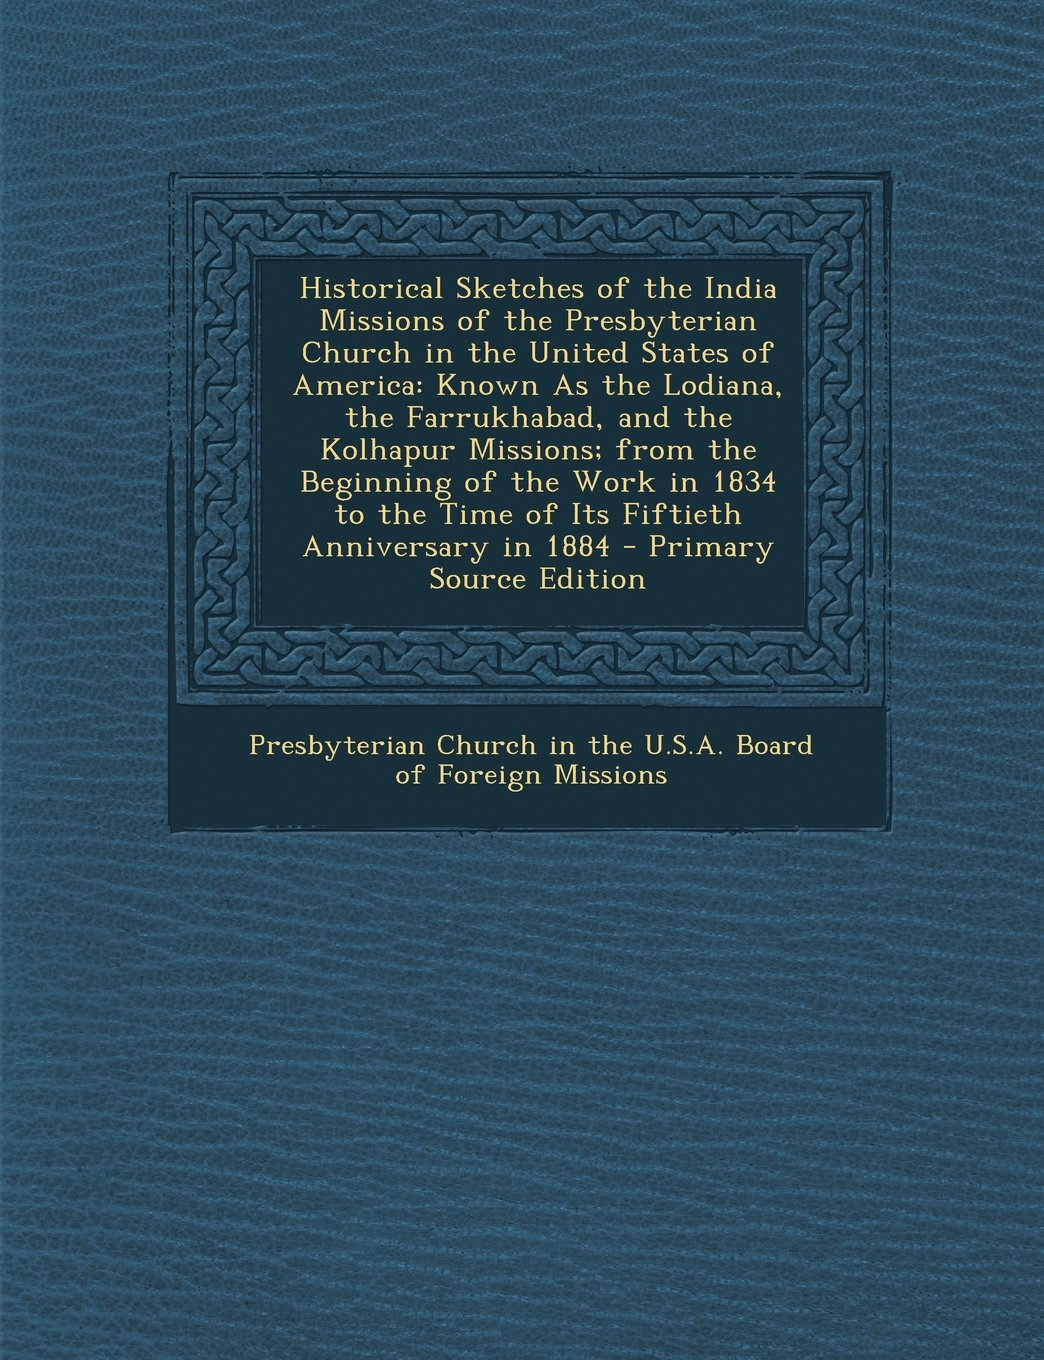 Historical Sketches of the India Missions of the Presbyterian Church in the United States of America: Known As the Lodiana, the Farrukhabad, and the ... the Time of Its Fiftieth Anniversary in 1884 PDF